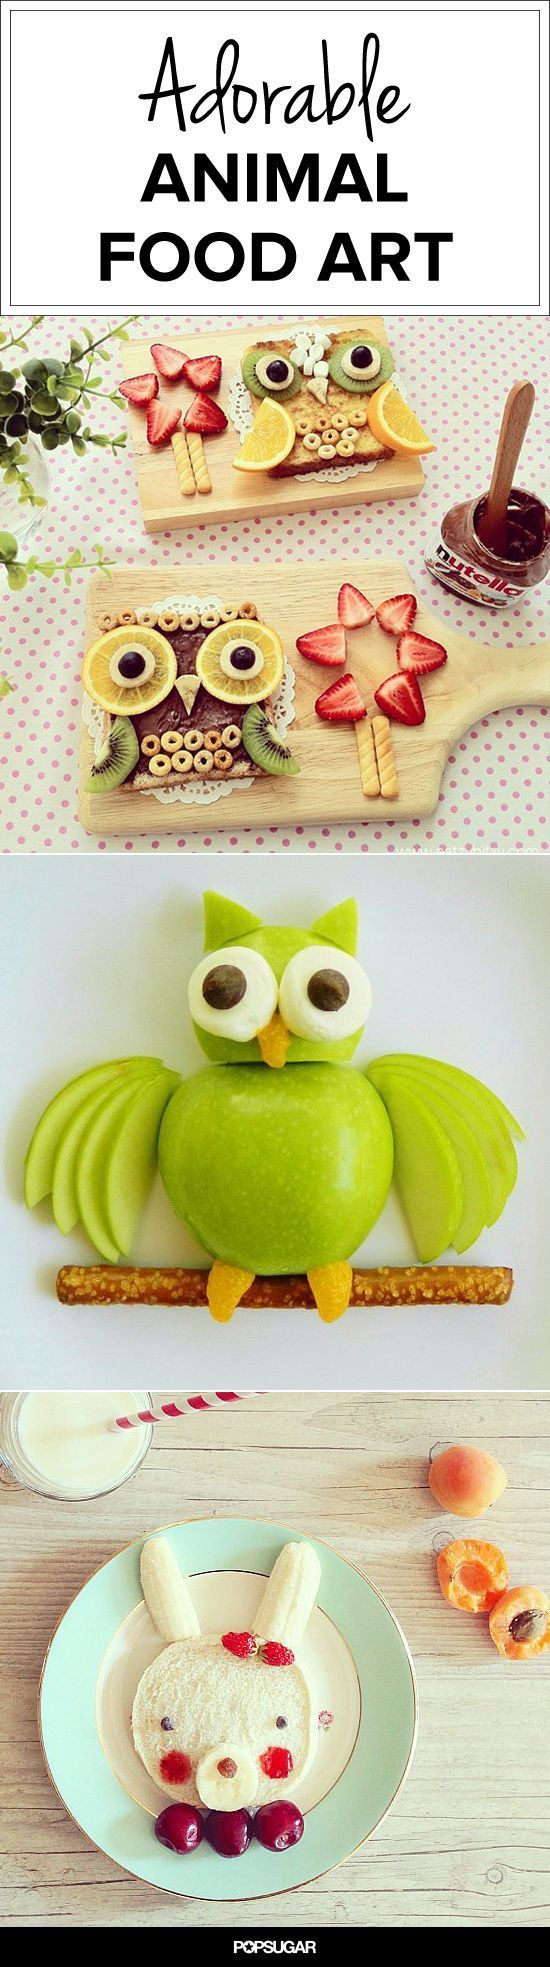 An Animal Snack Attack: 17 Works of Animal Food Art: More things that I will never make |  moms.popsugar.com